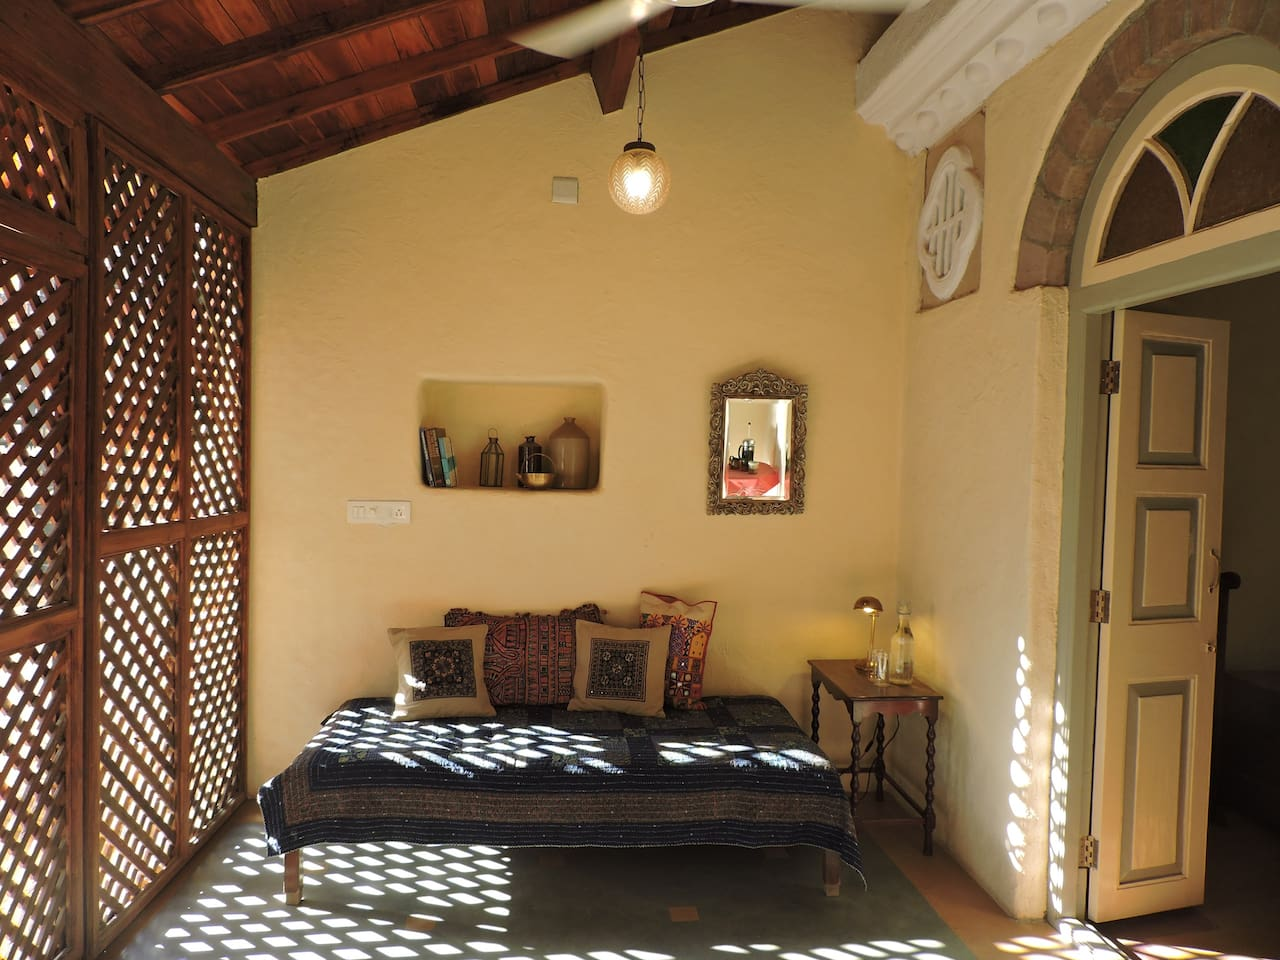 Enter your room via the courtyard in to this light-filled dayroom before entering the bedroom.